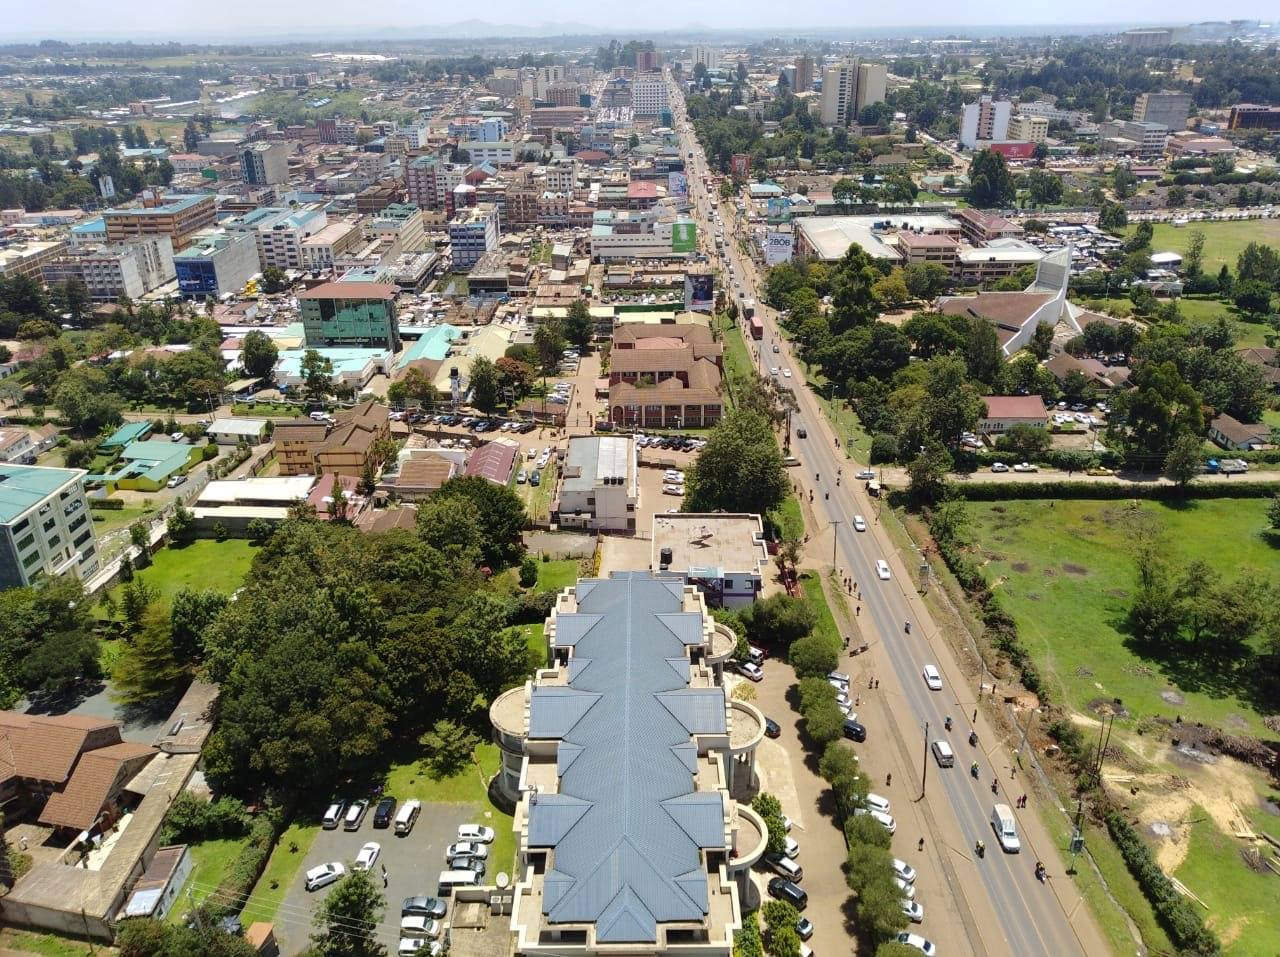 Aerial view of Eldoret Town and A104 Mombasa-Uganda Road. Photo Courtesy